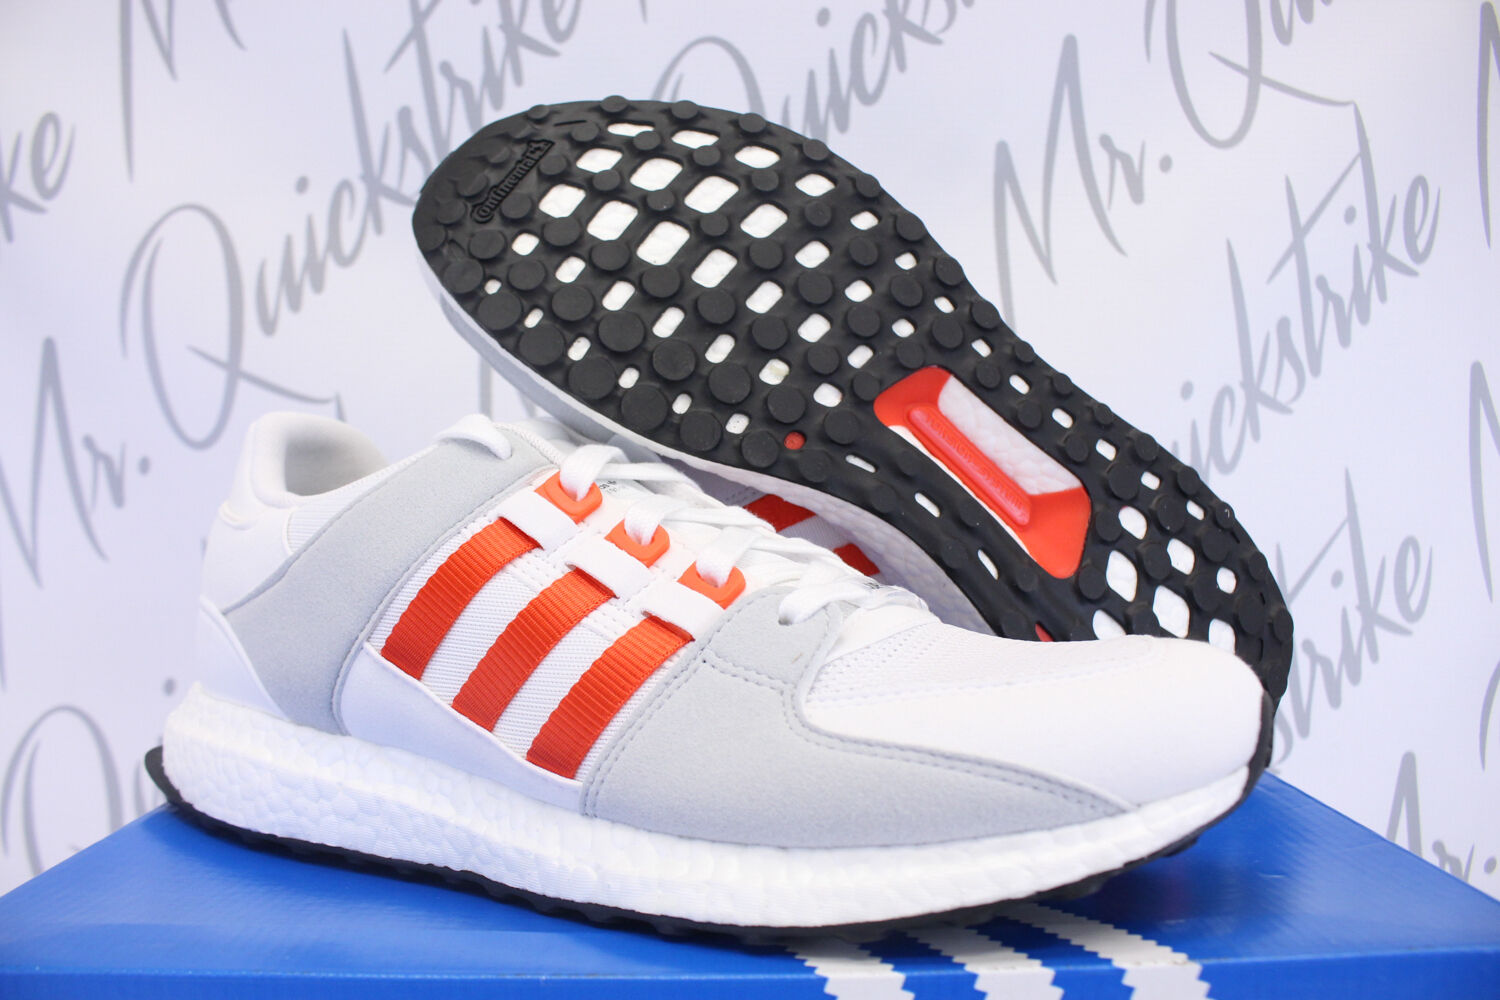 ADIDAS EQT SUPPORT ULTRA SZ 8.5 WHITE BOLD ORANGE GREY BY9532